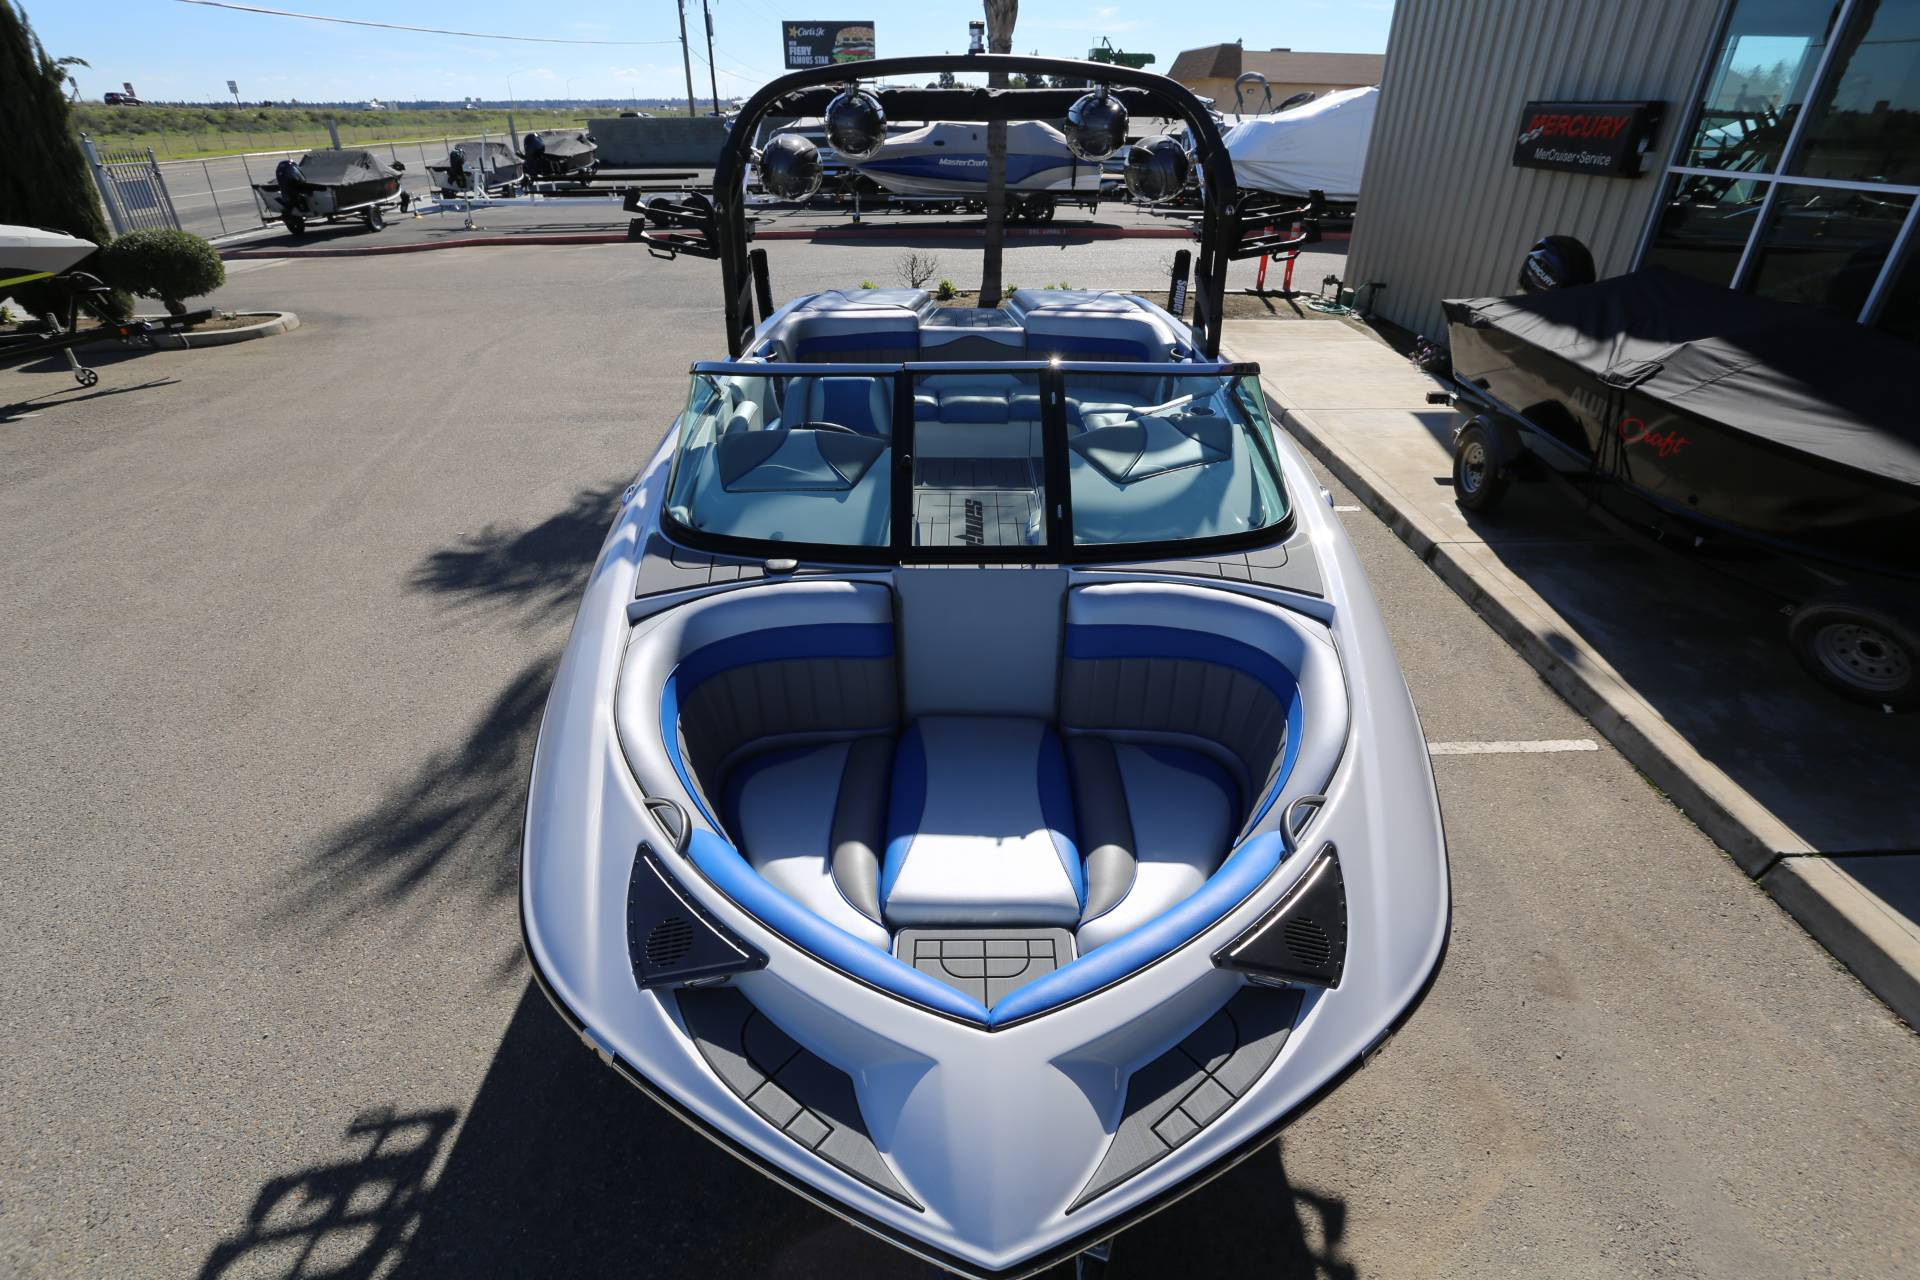 2021 Sanger Boats 212 SL in Madera, California - Photo 2